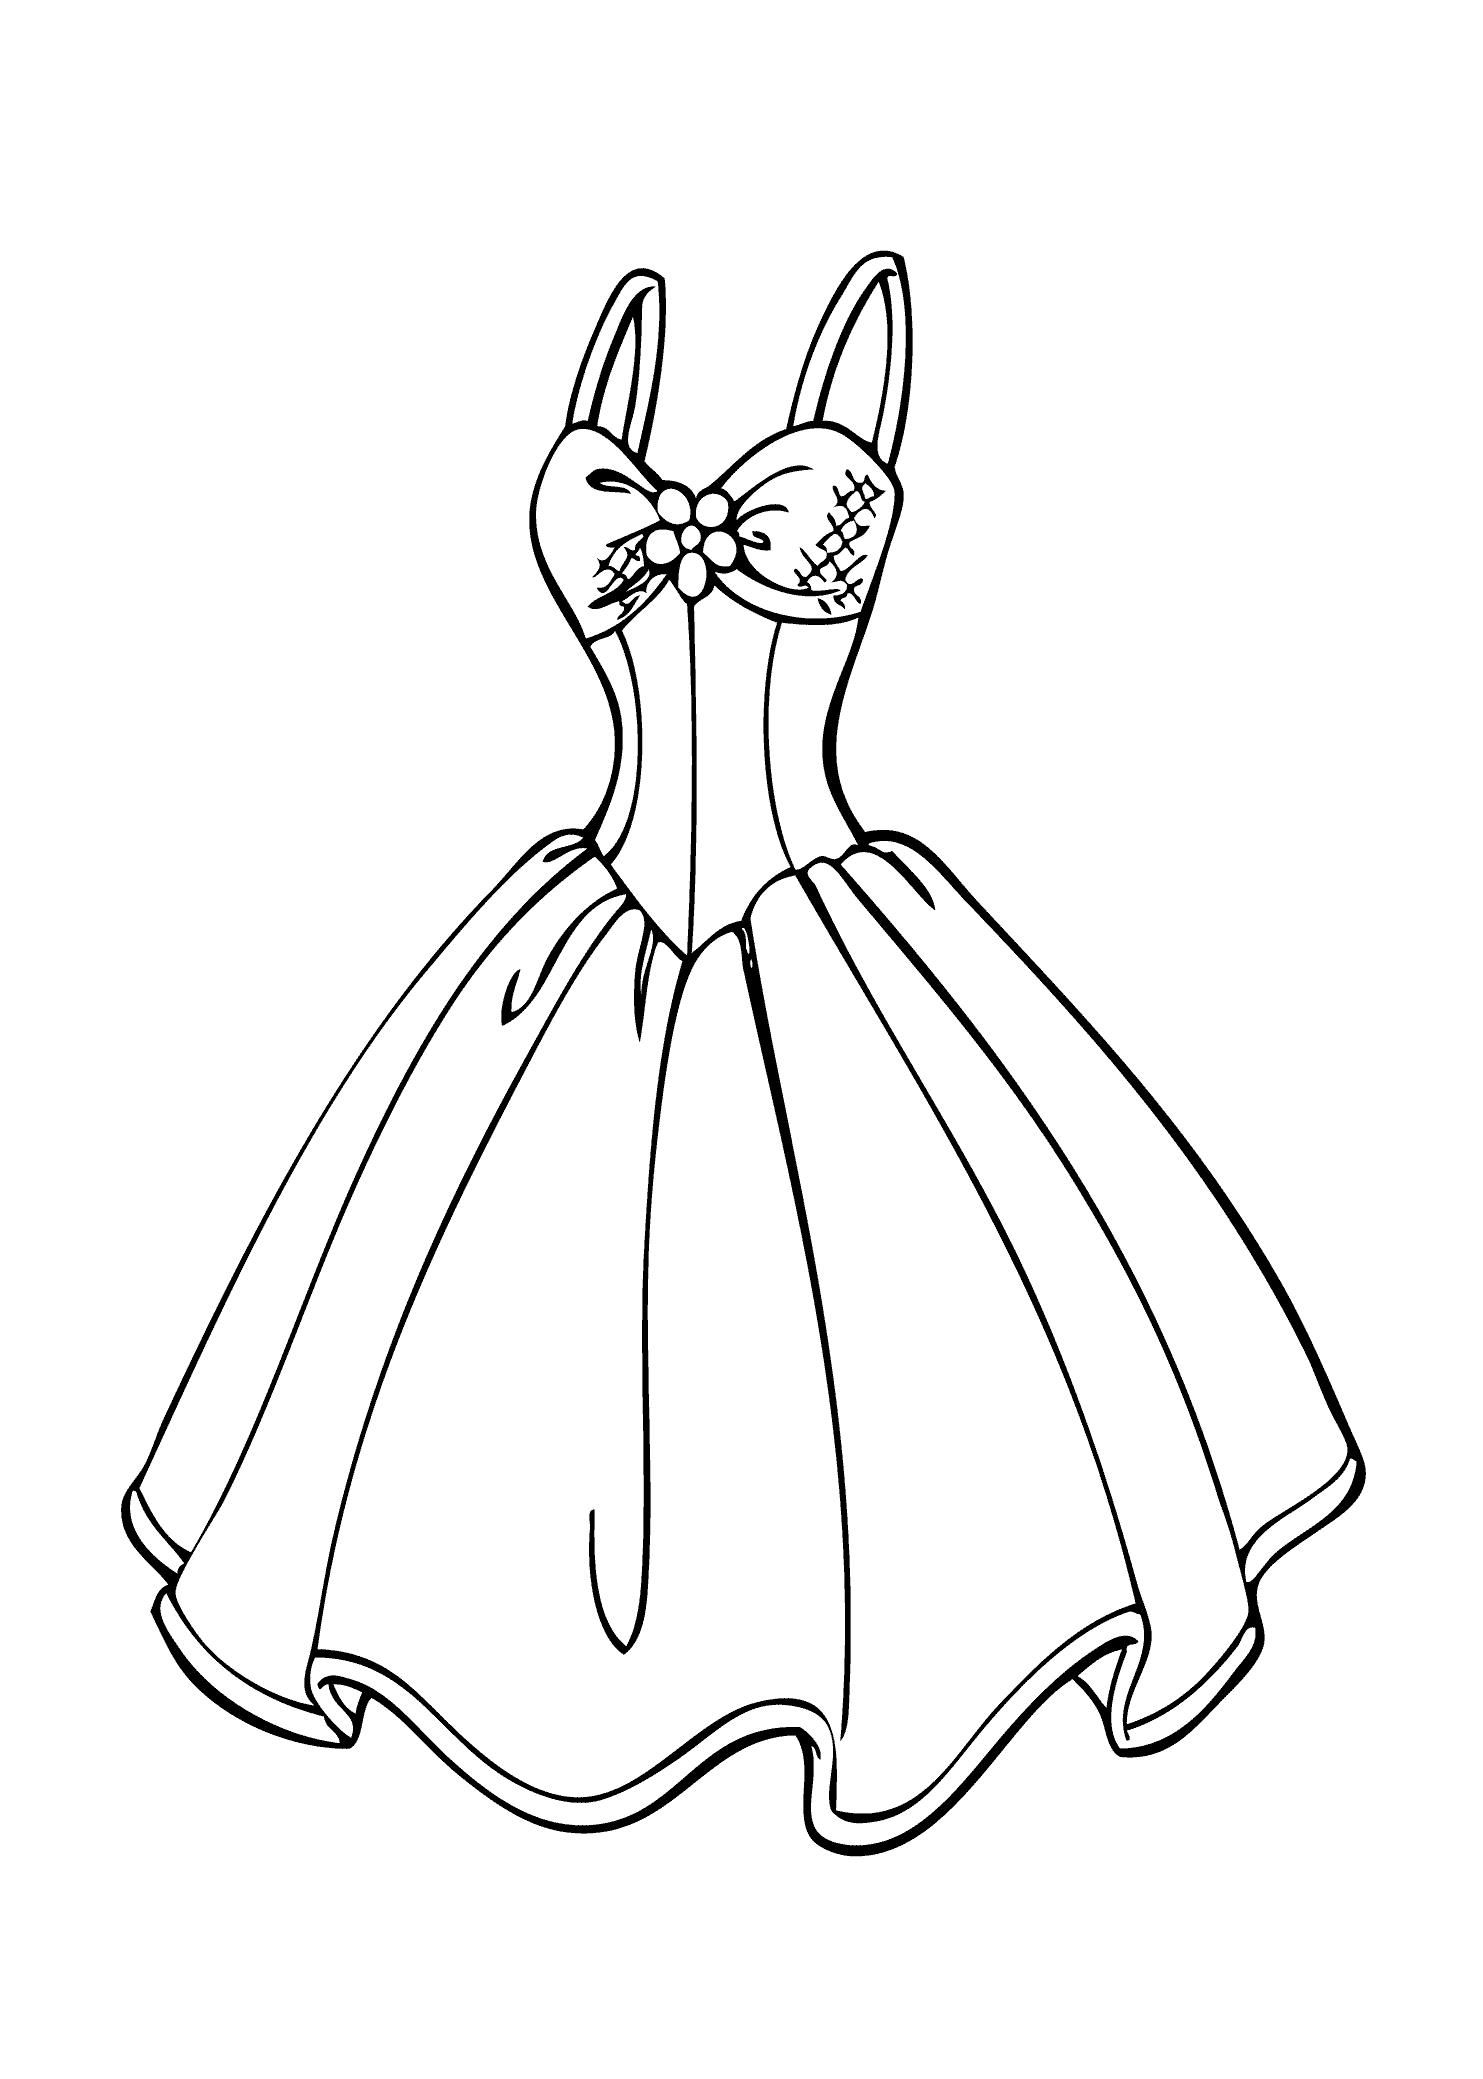 18 Coloring Page Dress Wedding Coloring Pages Coloring Pages For Girls Barbie Coloring Pages